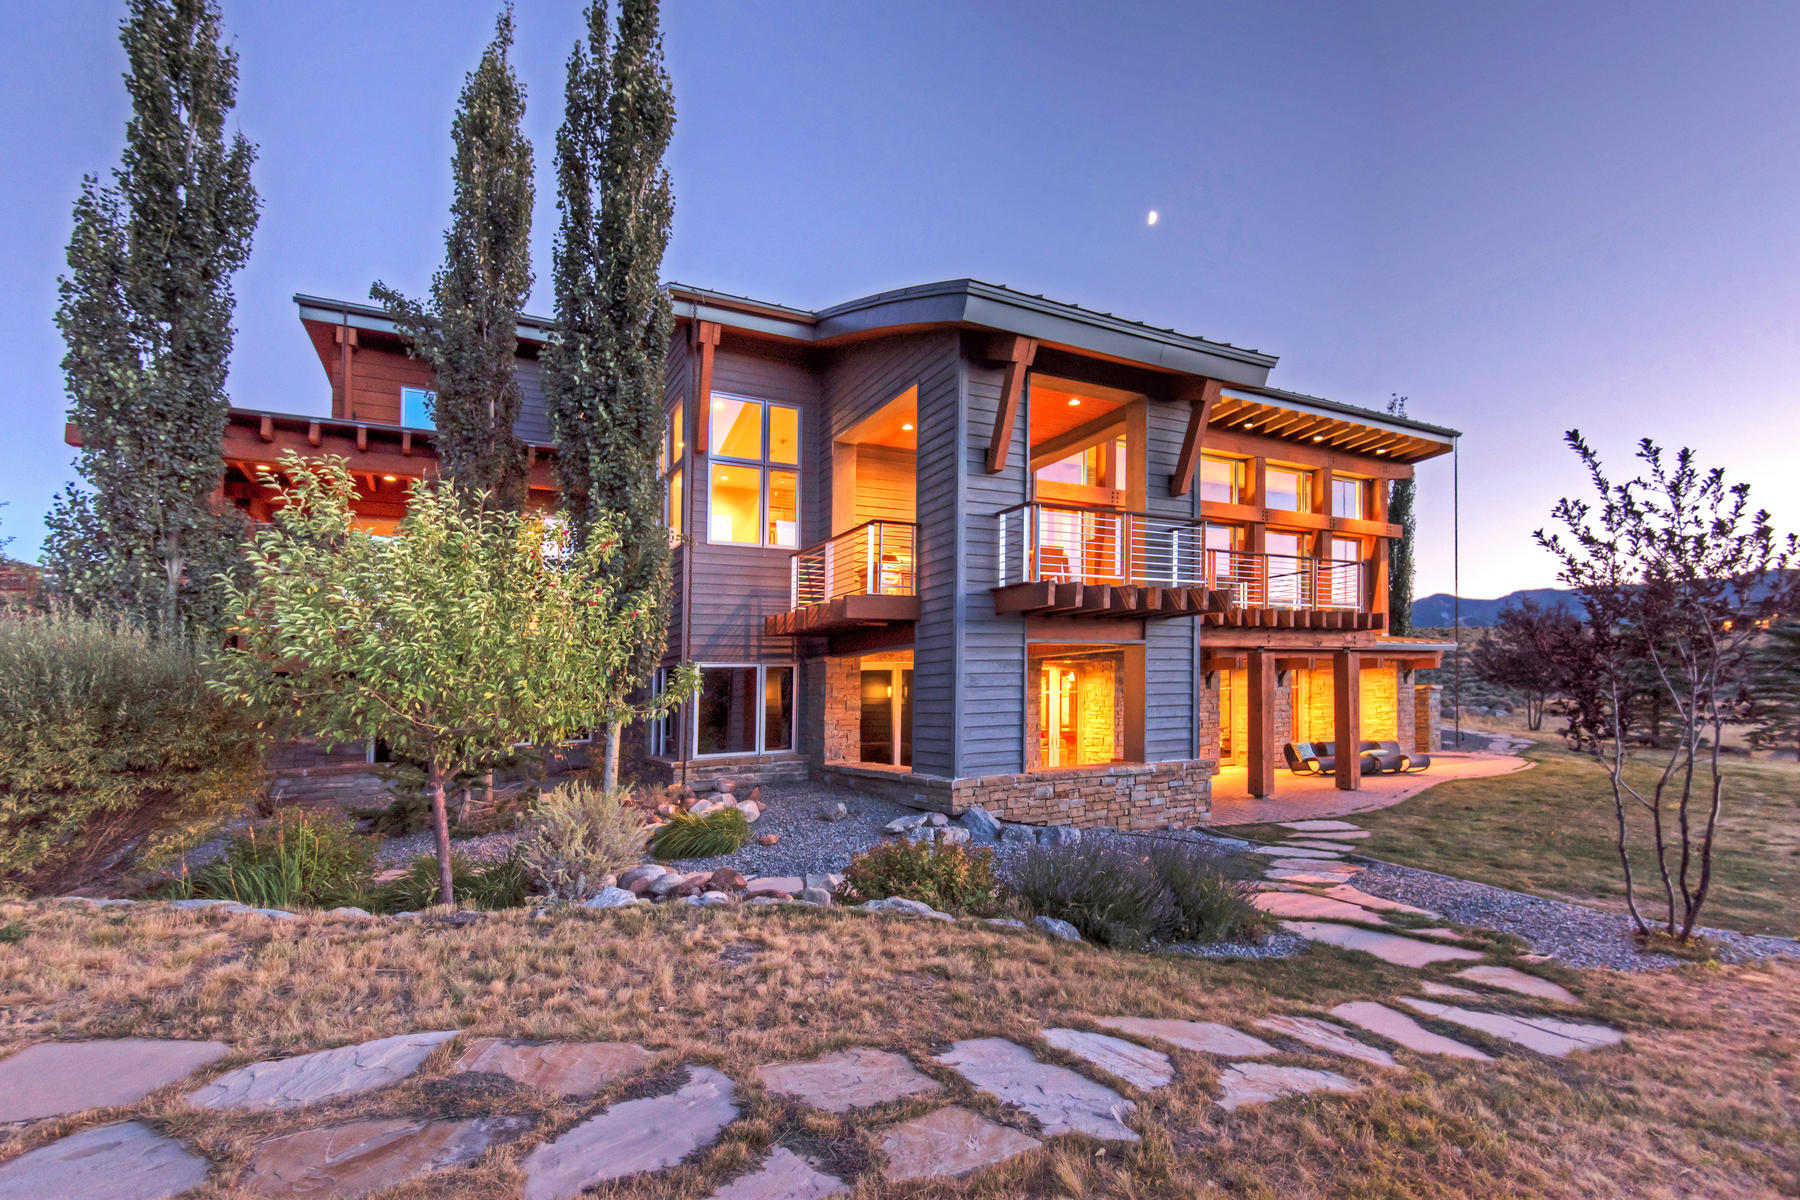 Maison unifamiliale pour l Vente à Contemporary Glenwild Dream Home 575 Mountain Holly Rd Park City, Utah, 84098 États-Unis